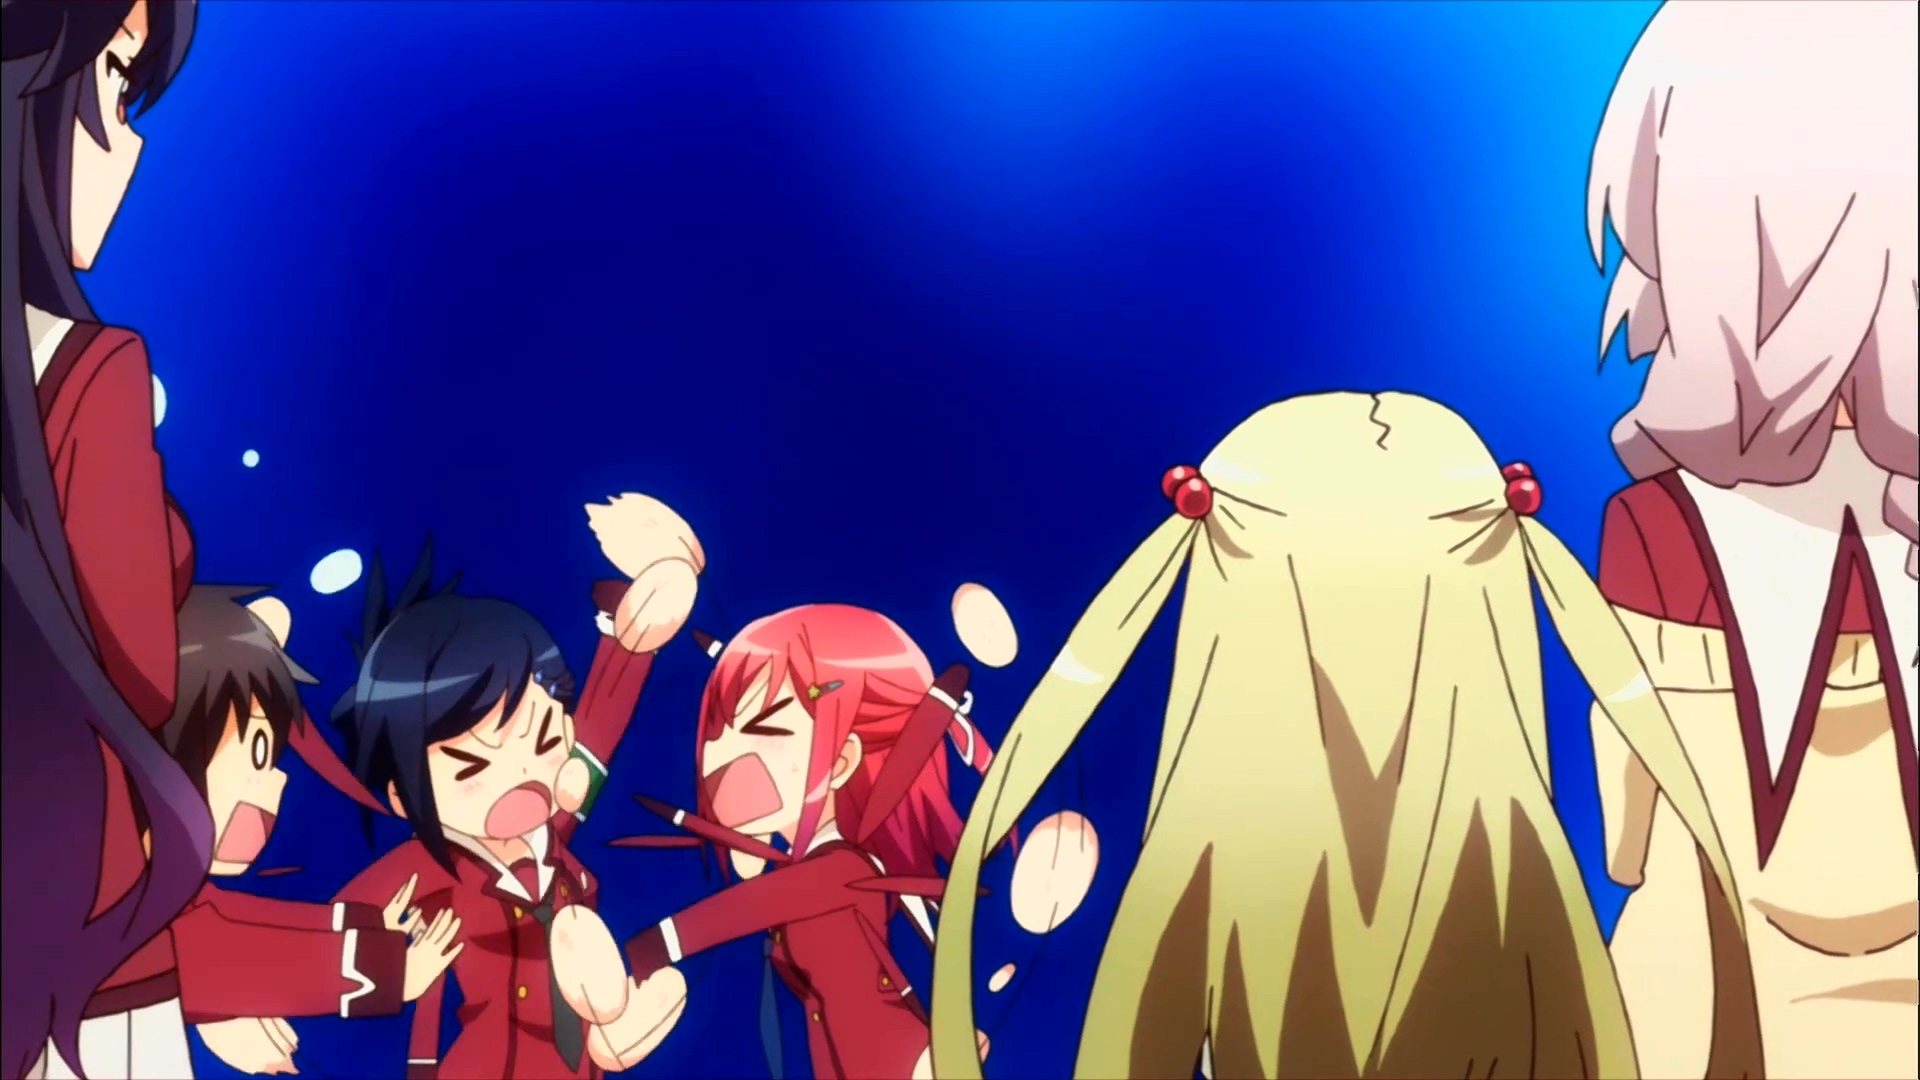 [HorribleSubs] Inou Battle wa Nichijou-kei no Naka de - 02 [1080p].mkv_20141019_005324.250.jpg